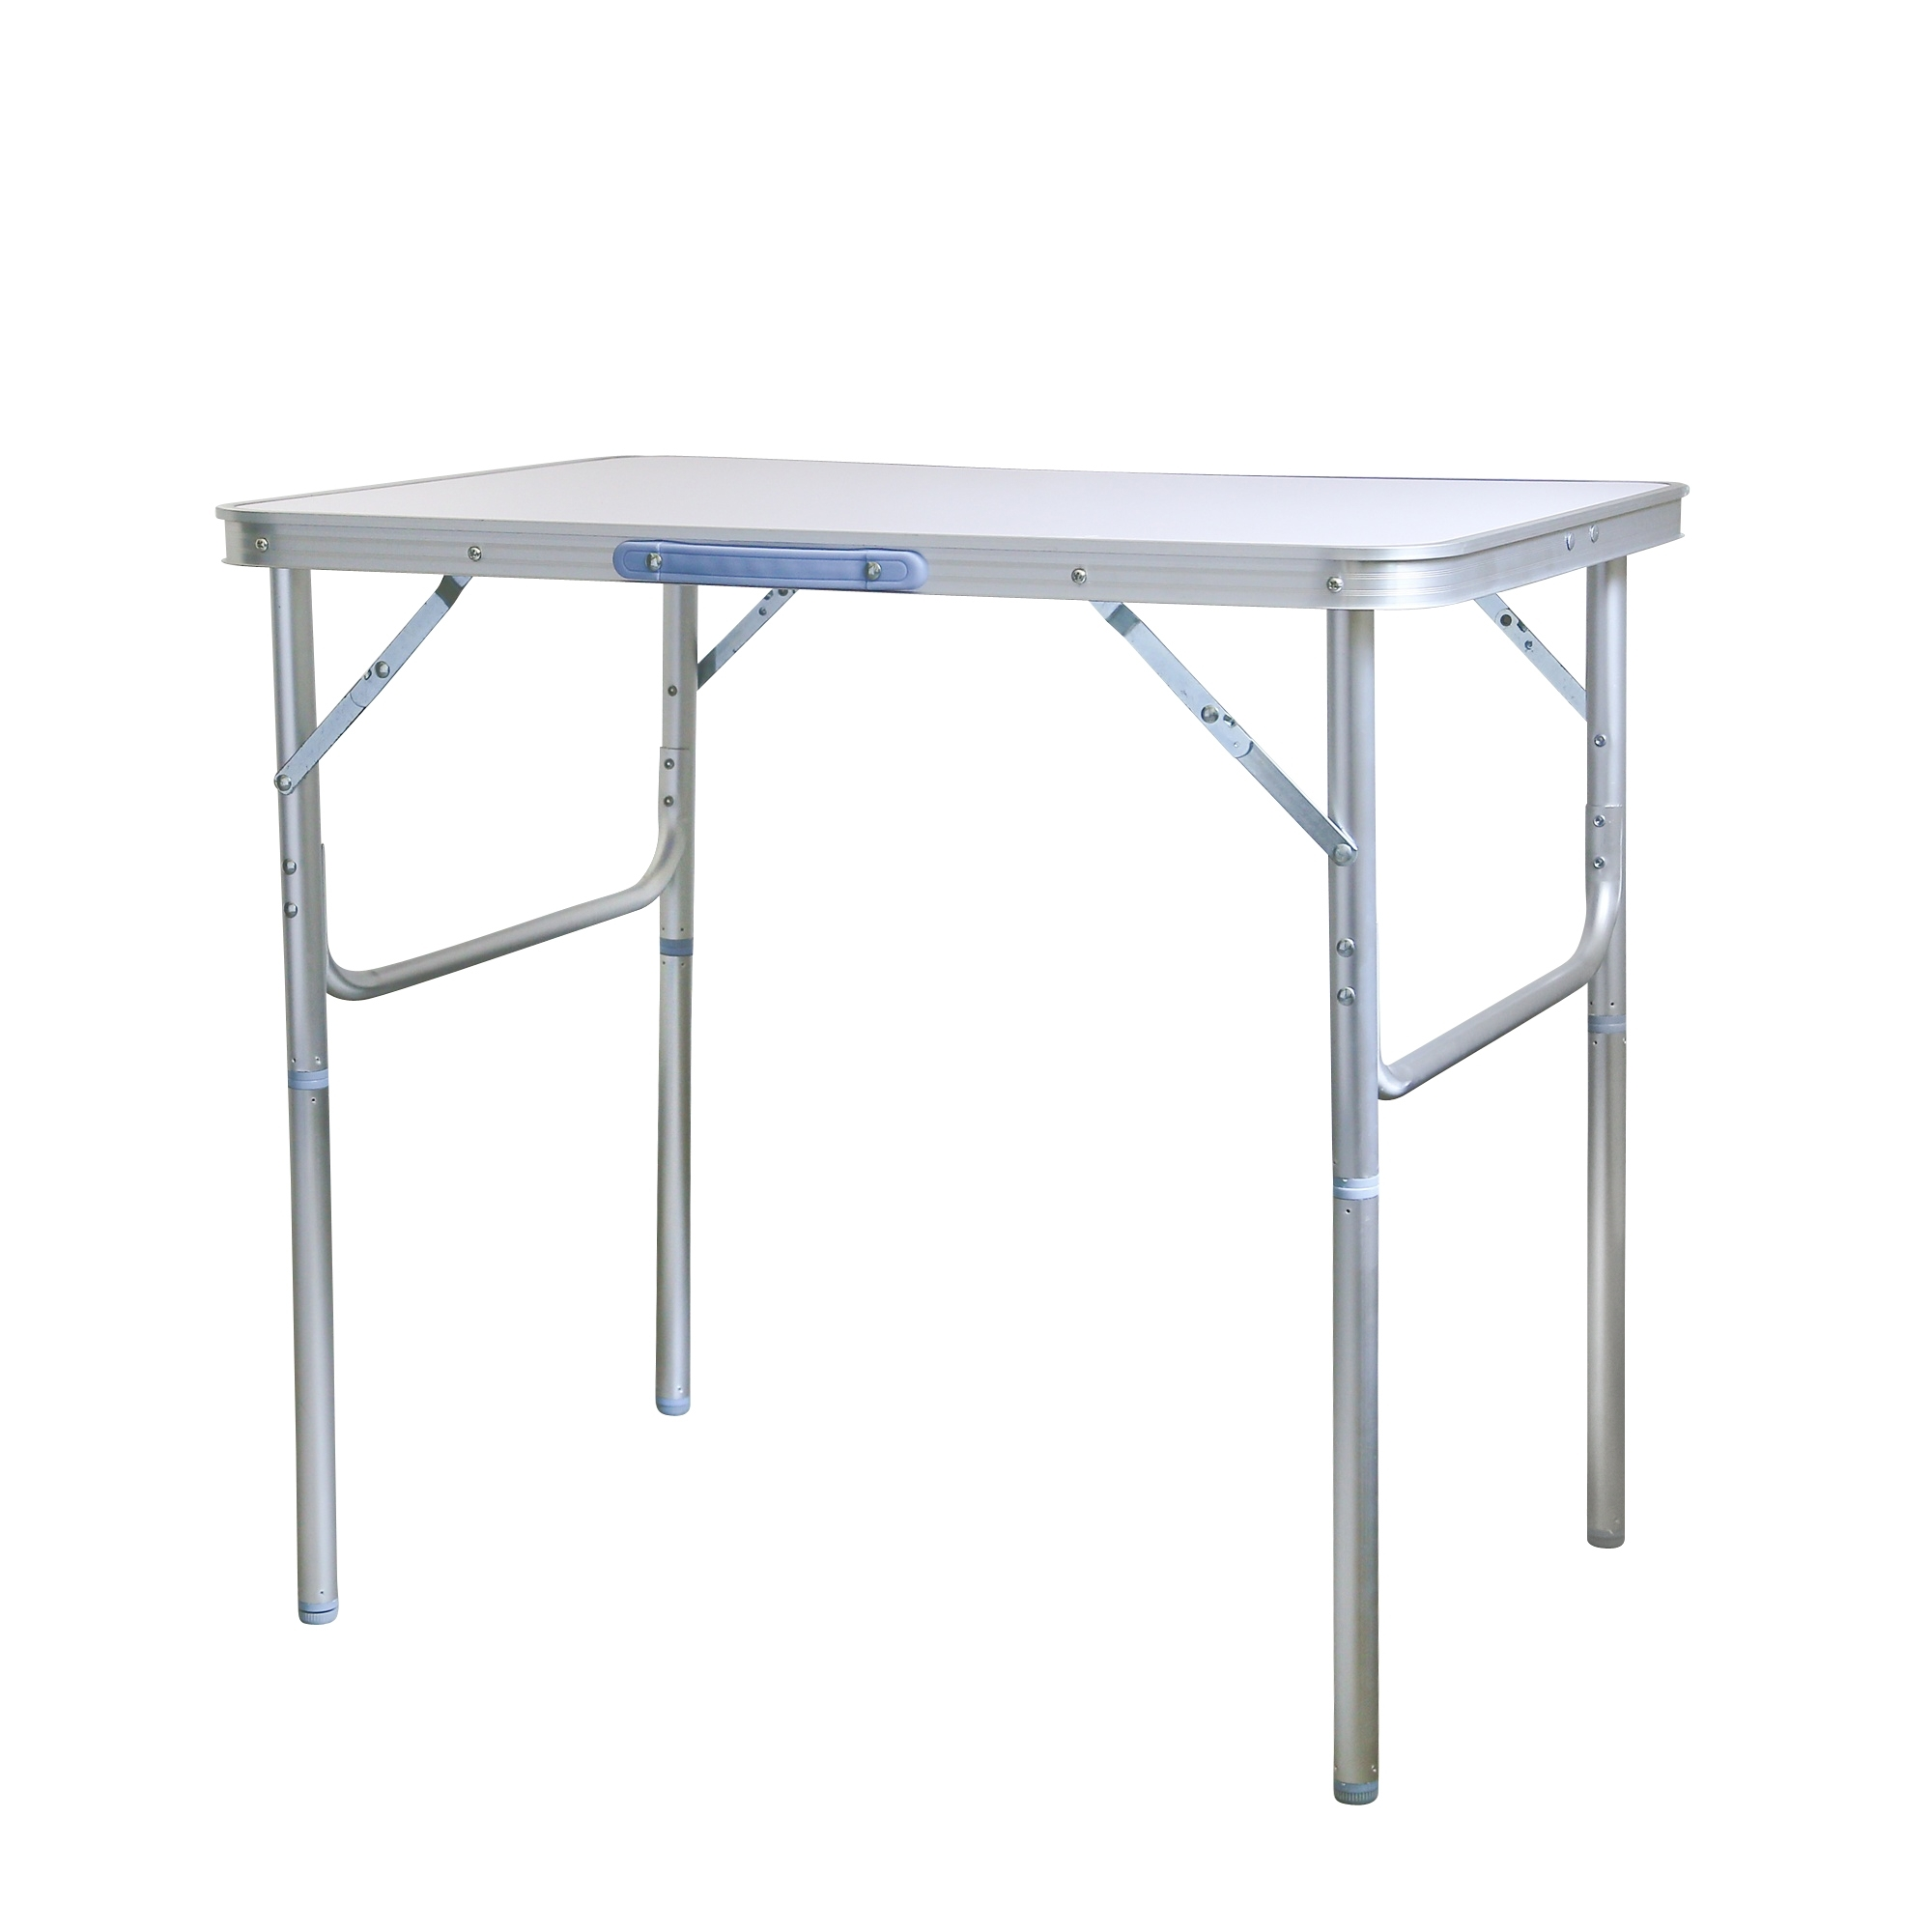 Table Pliante Multi Usage Jom Table Pliante 75 X 55 X 60 Cm Multiusage Camping Matériaux